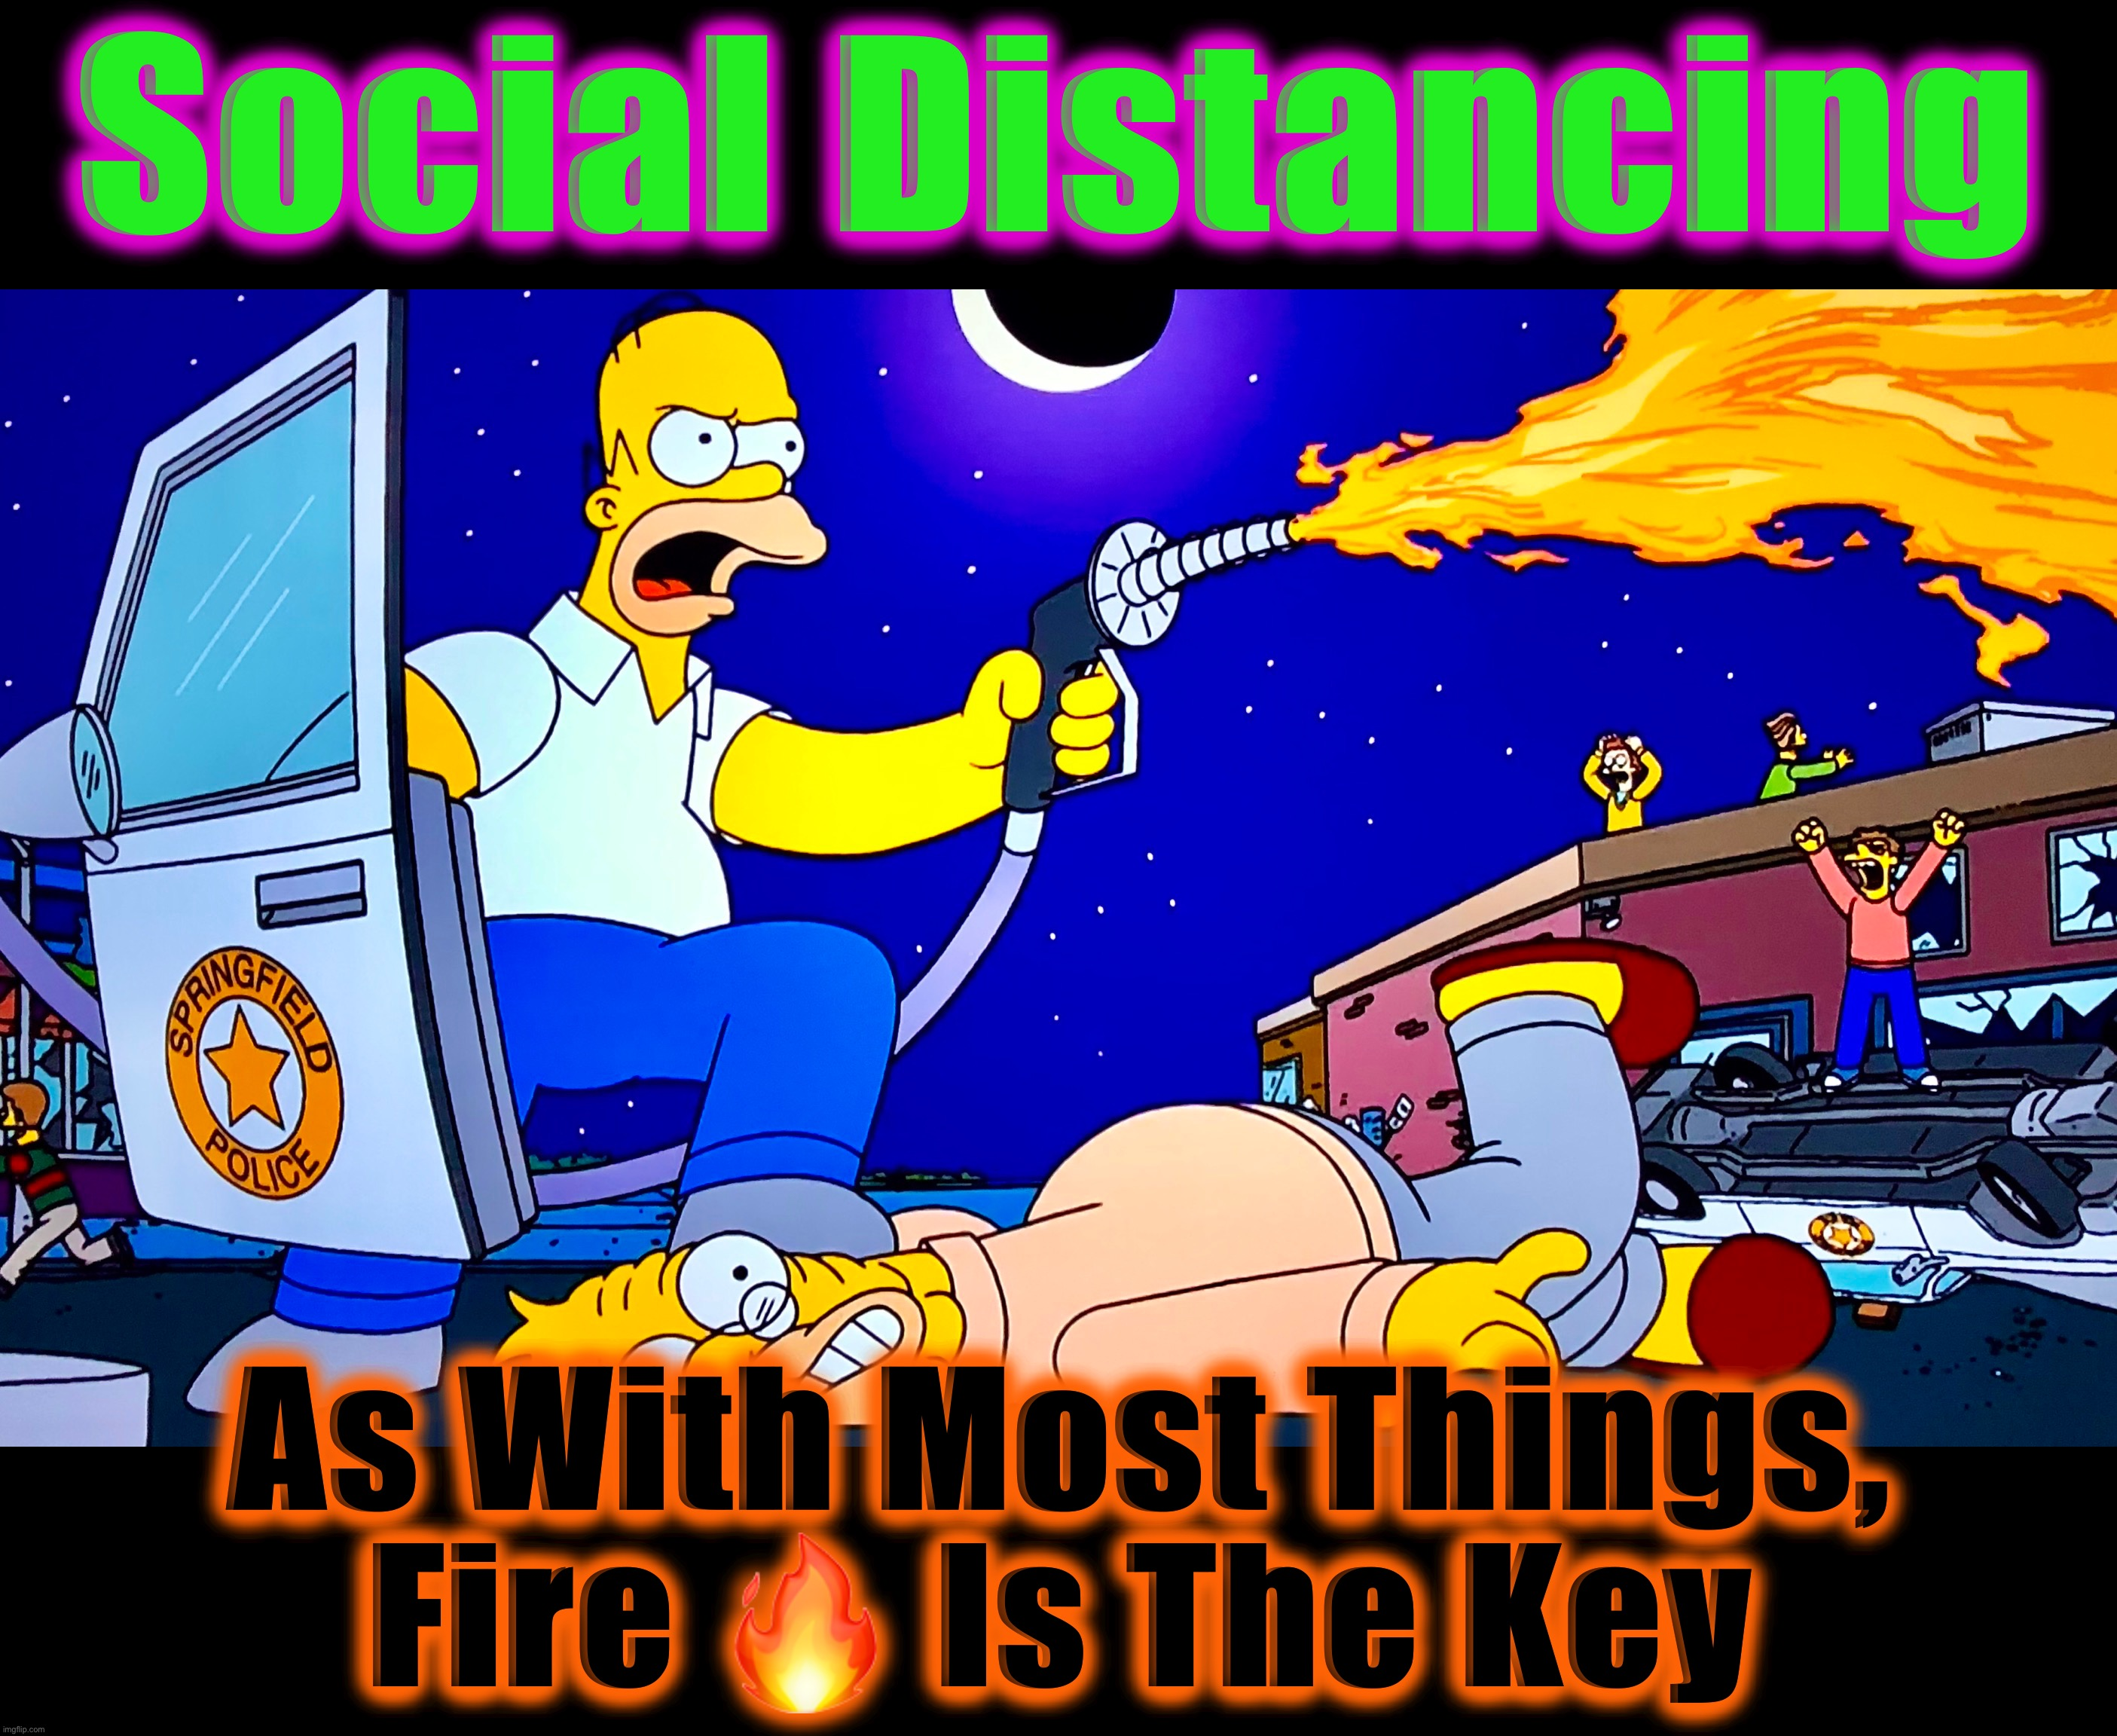 Covidiot The Barbarian |  Social Distancing; As With Most Things, Fire 🔥 Is The Key | image tagged in covidiots,social distancing,memes,flamethrower,the simpsons,coronavirus | made w/ Imgflip meme maker